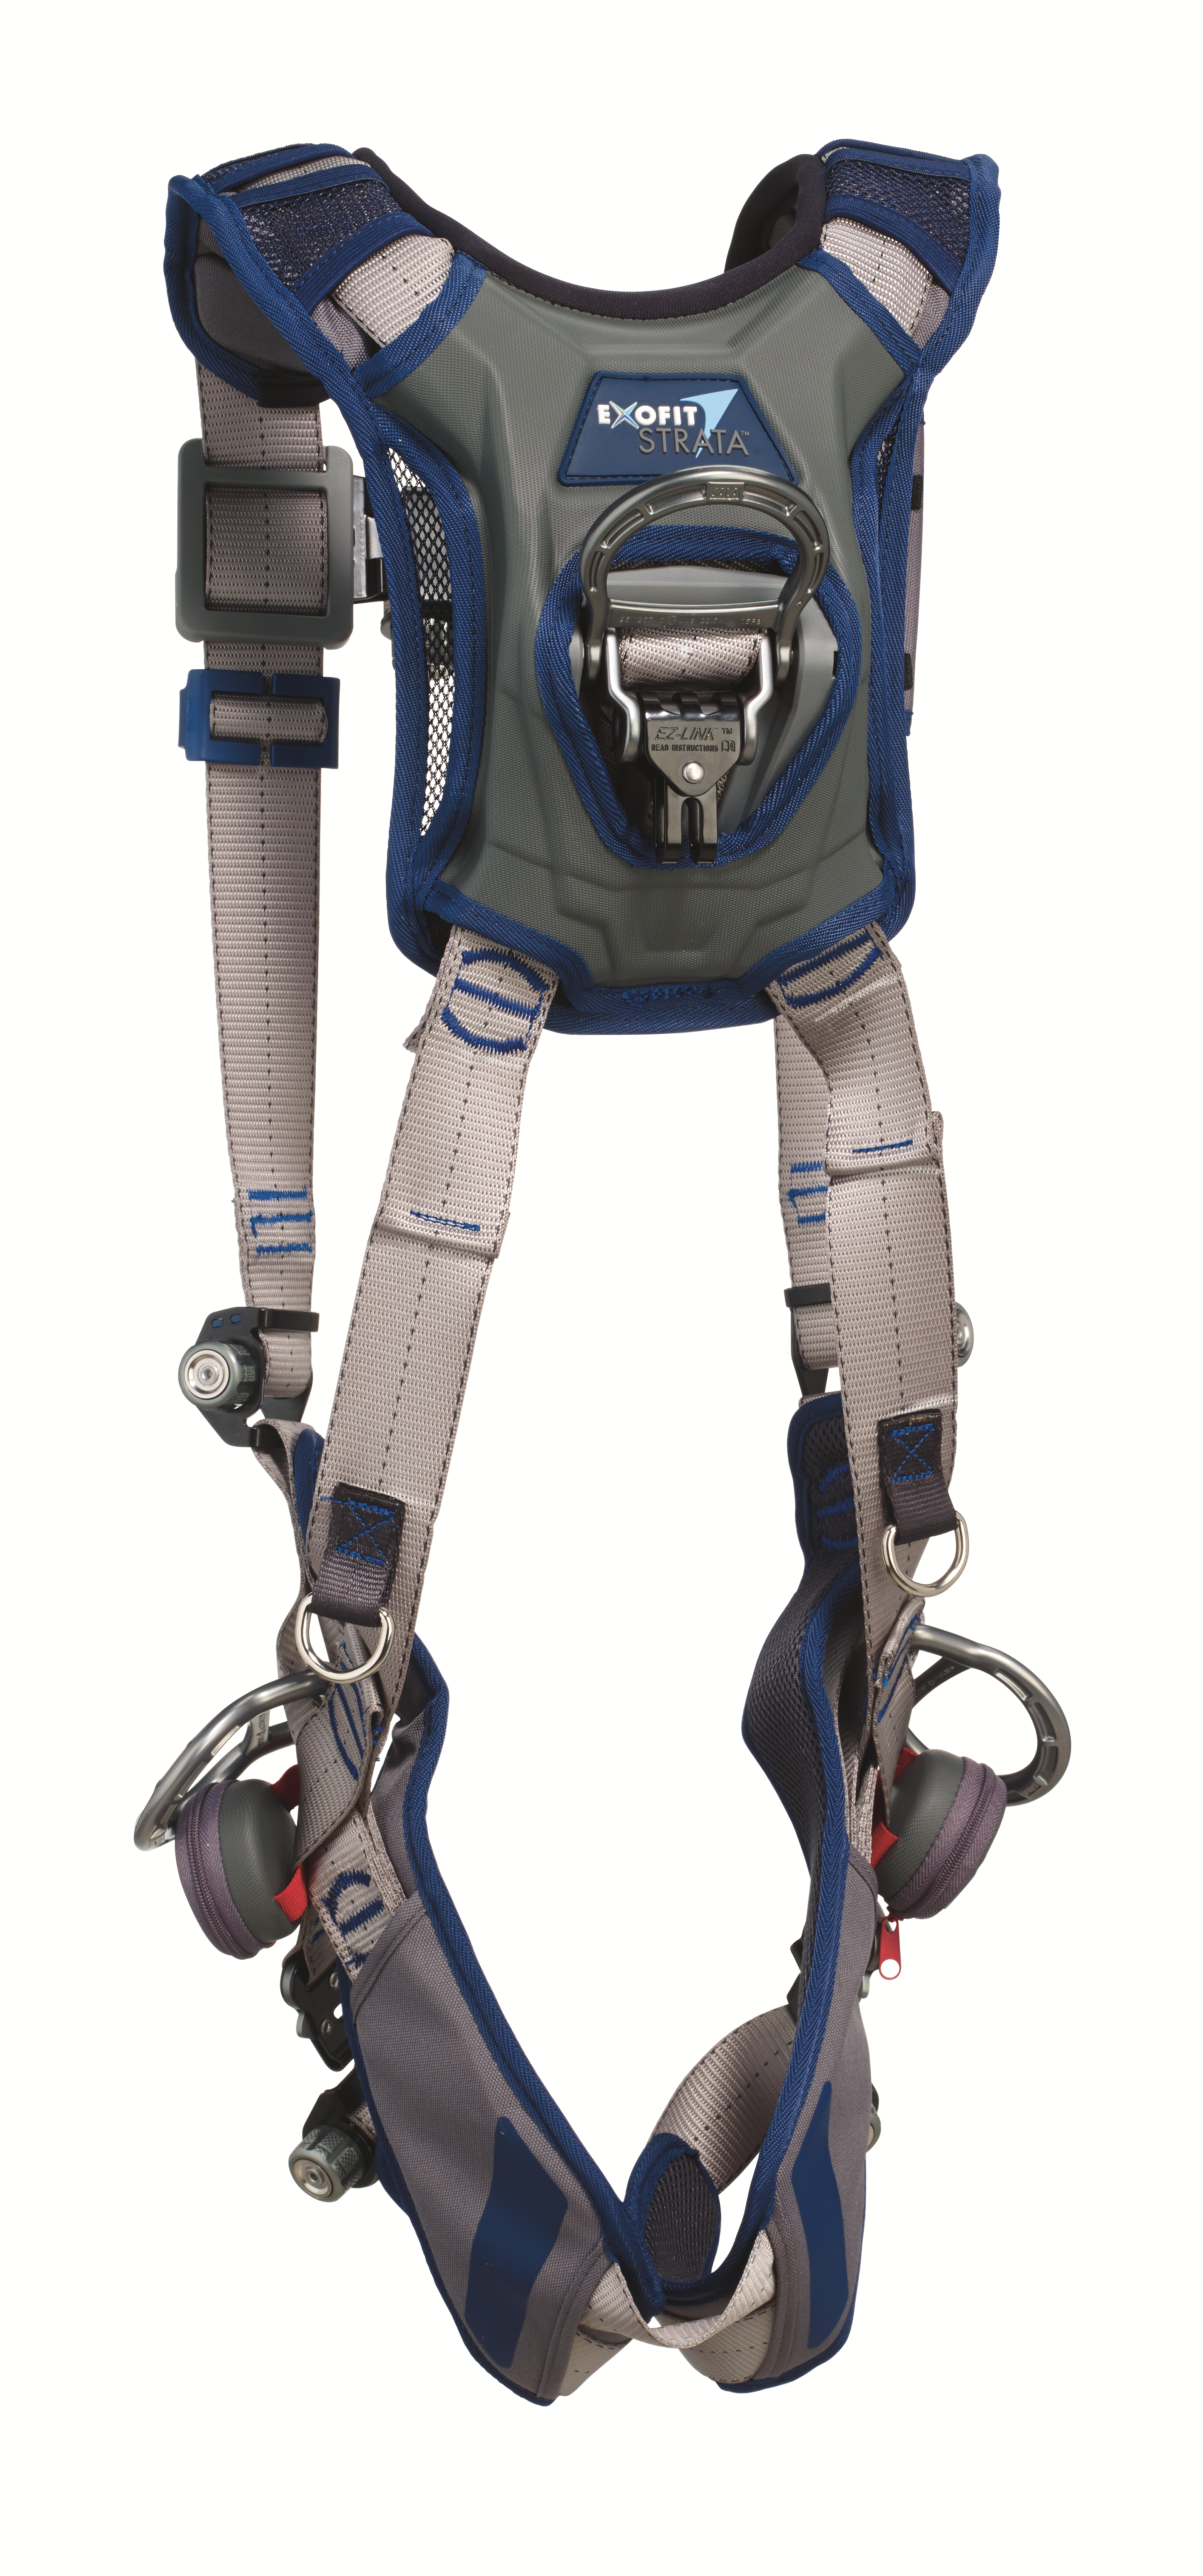 ExoFit STRATA Vest Harness, Triple Action Chest and Leg Buckles, Side D-Rings, Back